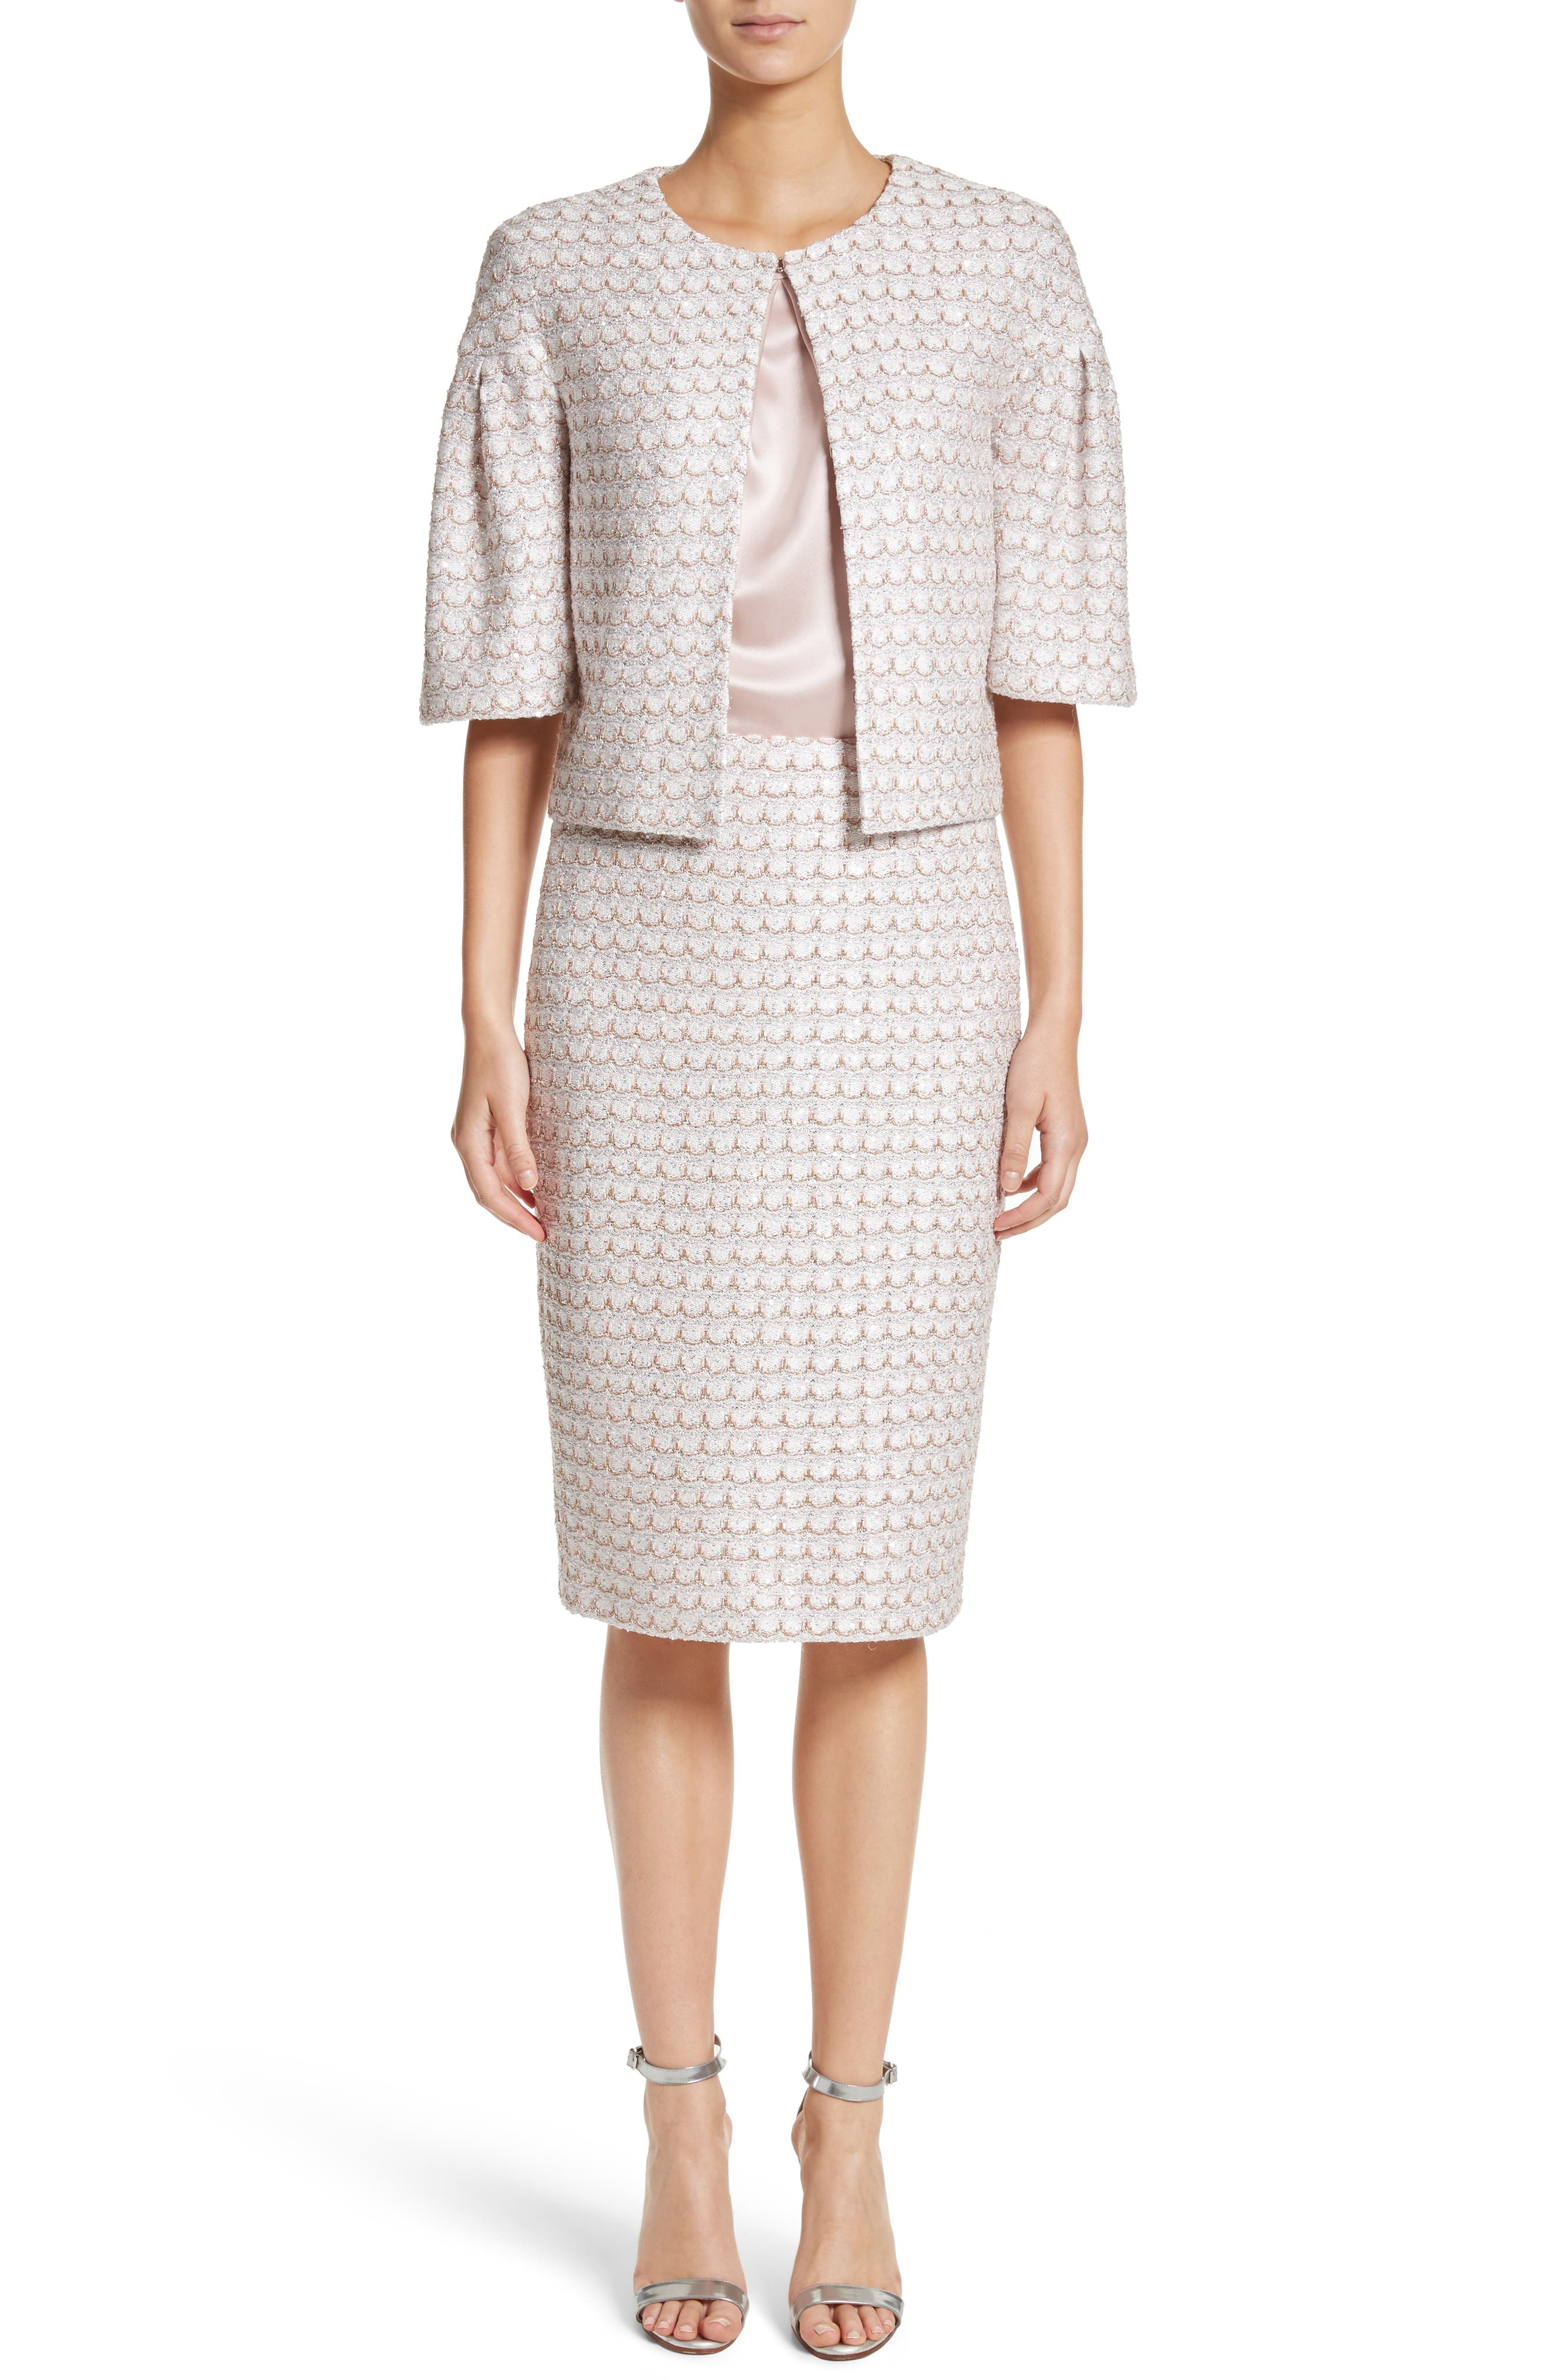 ST. JOHN COLLECTION,                             Frosted Metallic Knit Pencil Skirt,                             Alternate thumbnail 7, color,                             660